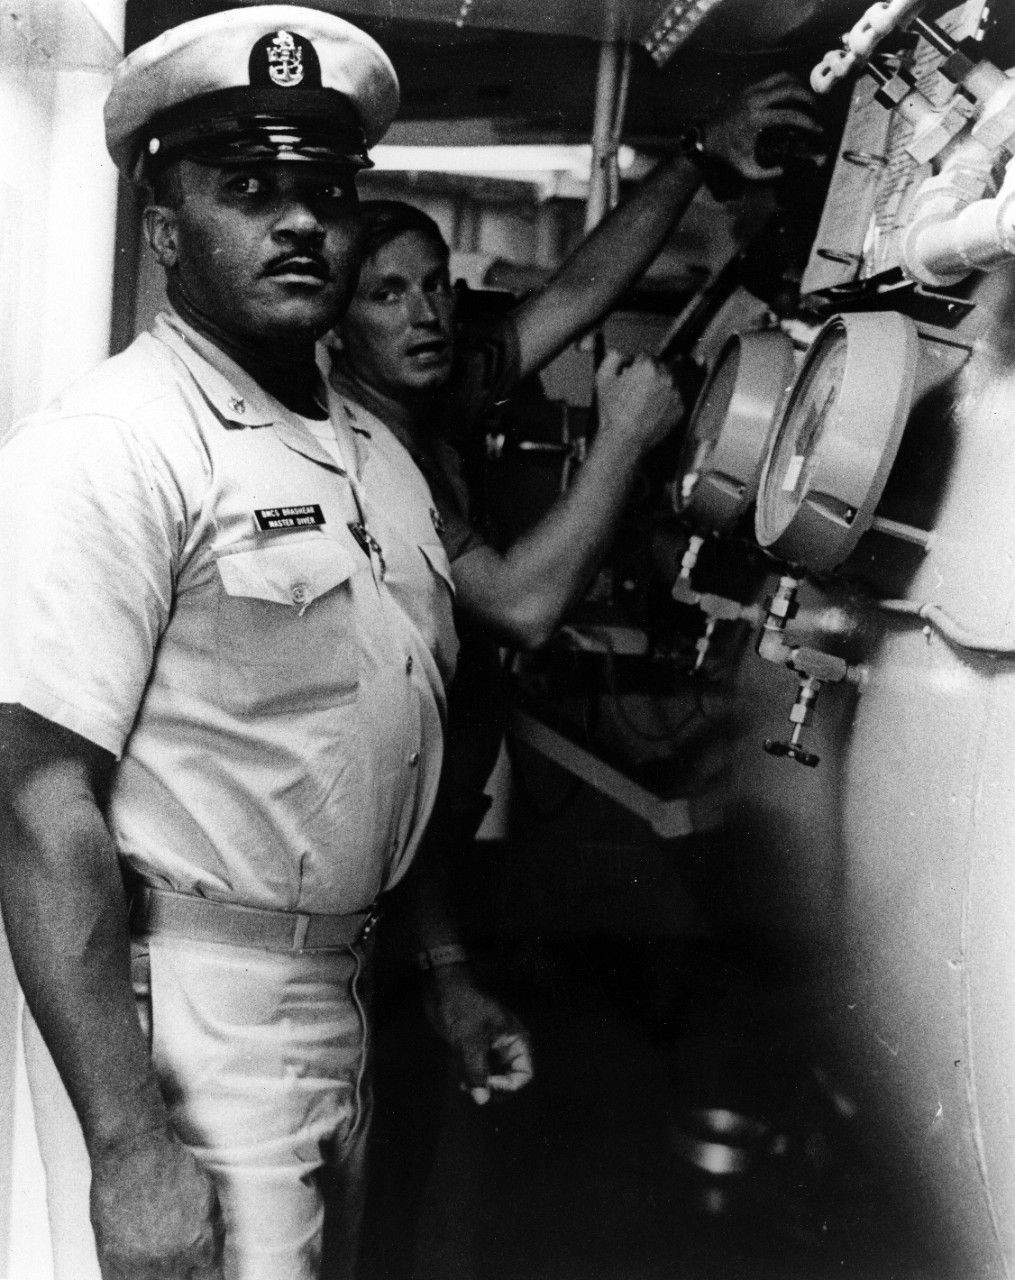 Photo #: NH 107679  Senior Chief Boatswains' Mate Carl M. Brashear, USN